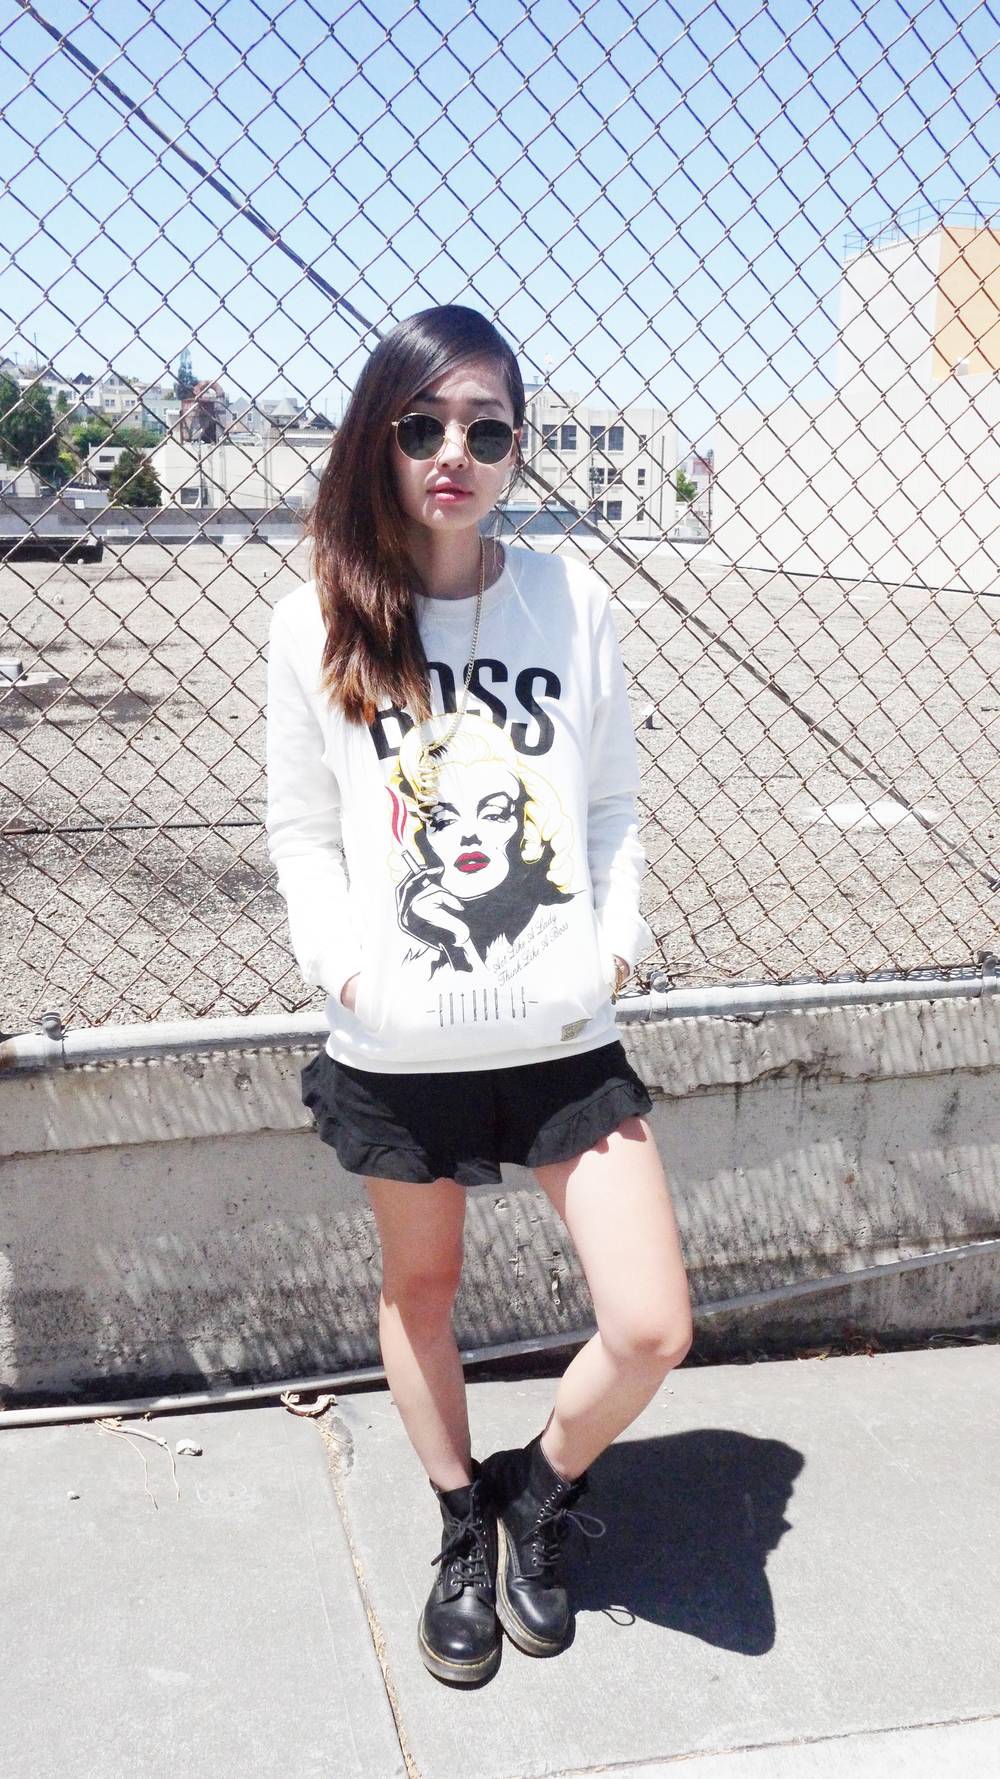 [sunnies | Ray Ban, crewneck | Entree Lifestyle, shorts | Love Junkee, boots | Docs]